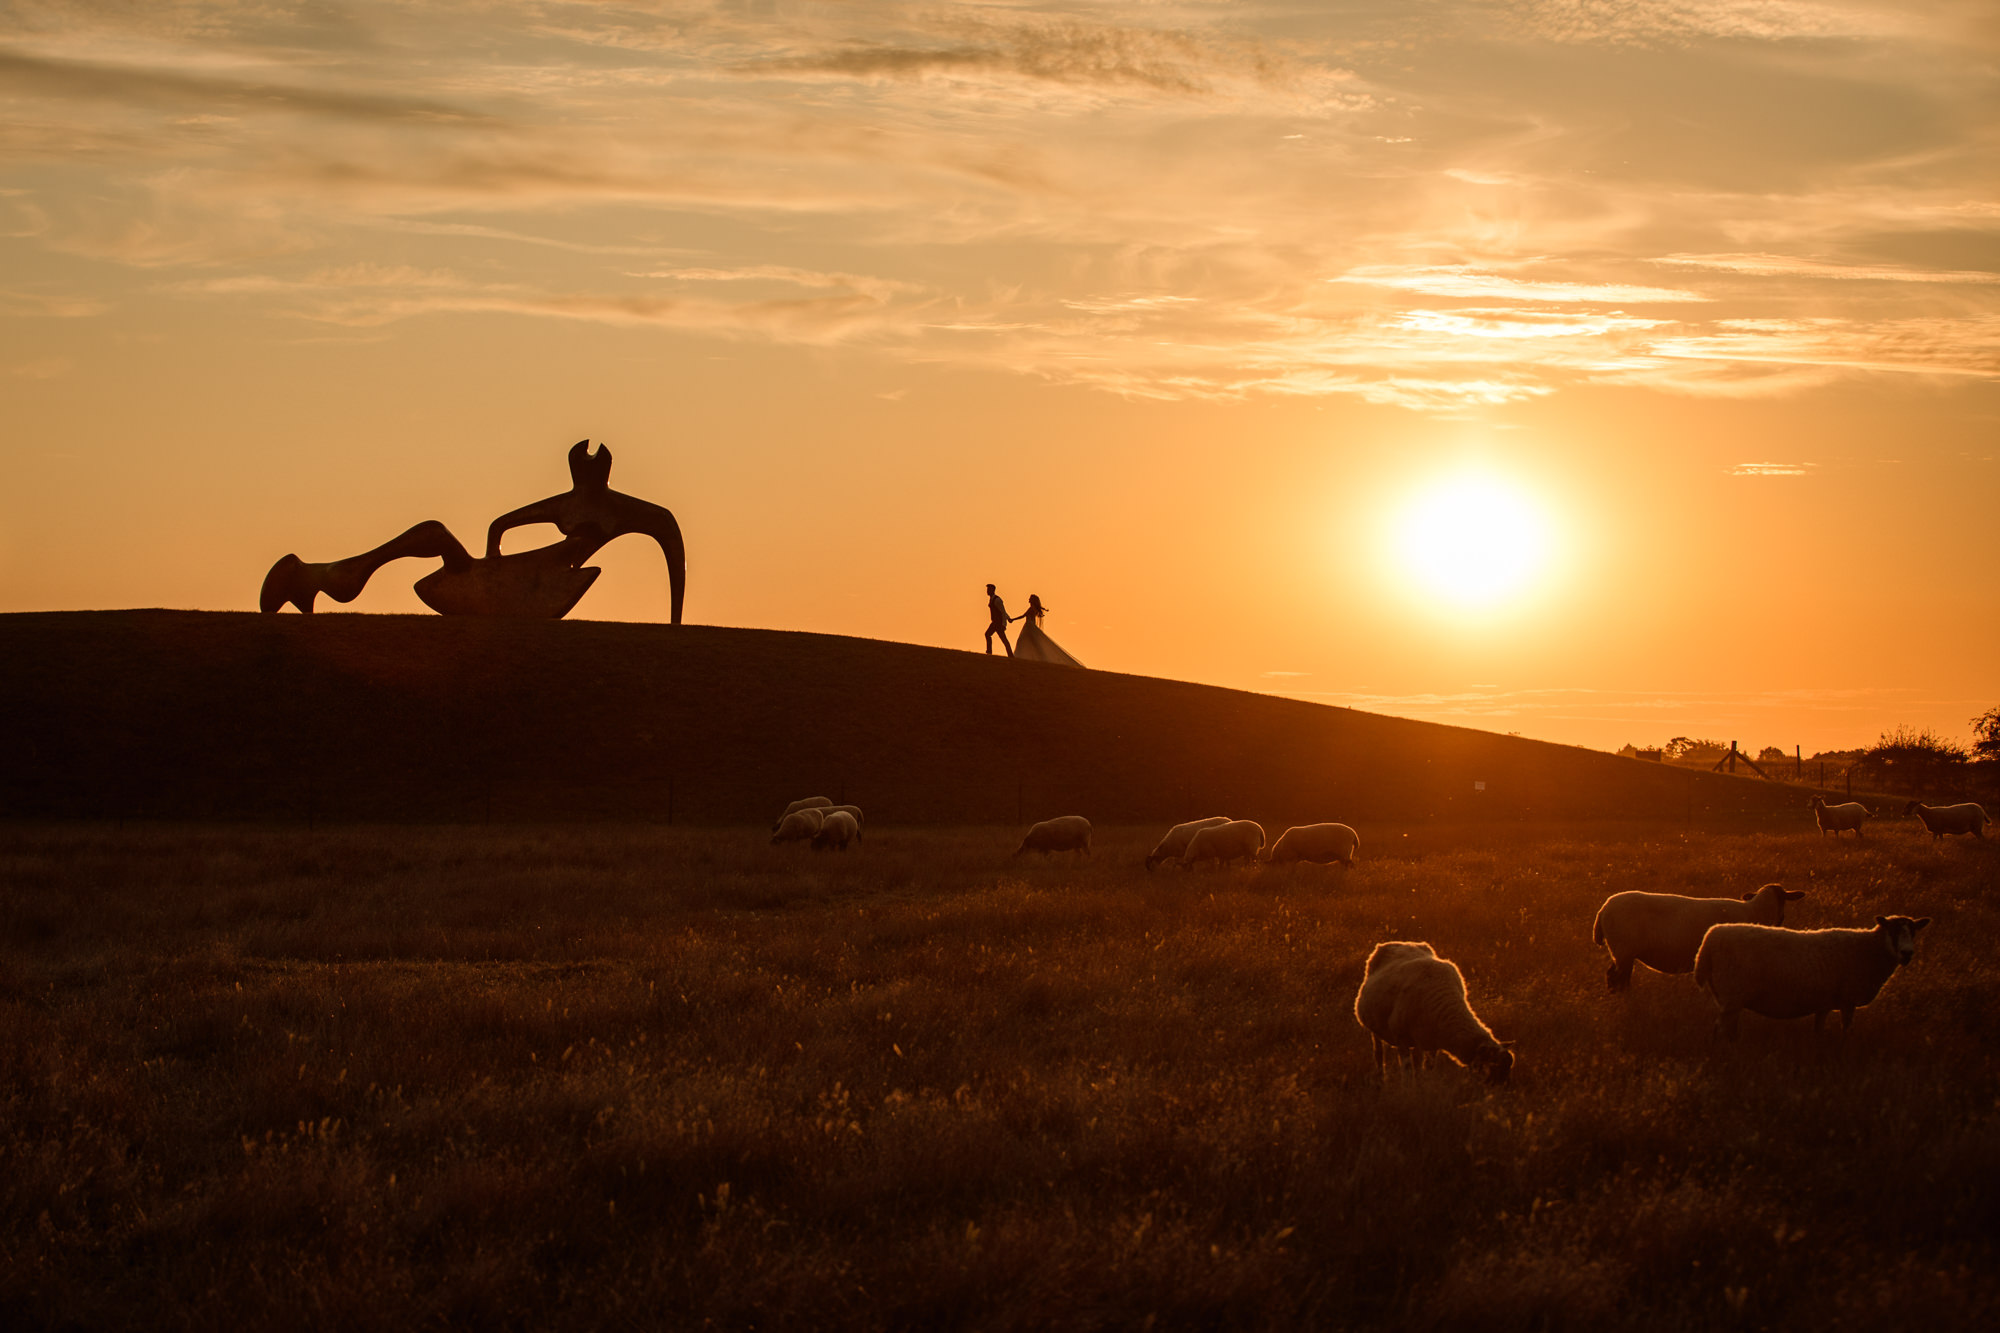 Bride and Groom walking up hill at sunset towards Henry Moore reclining figure